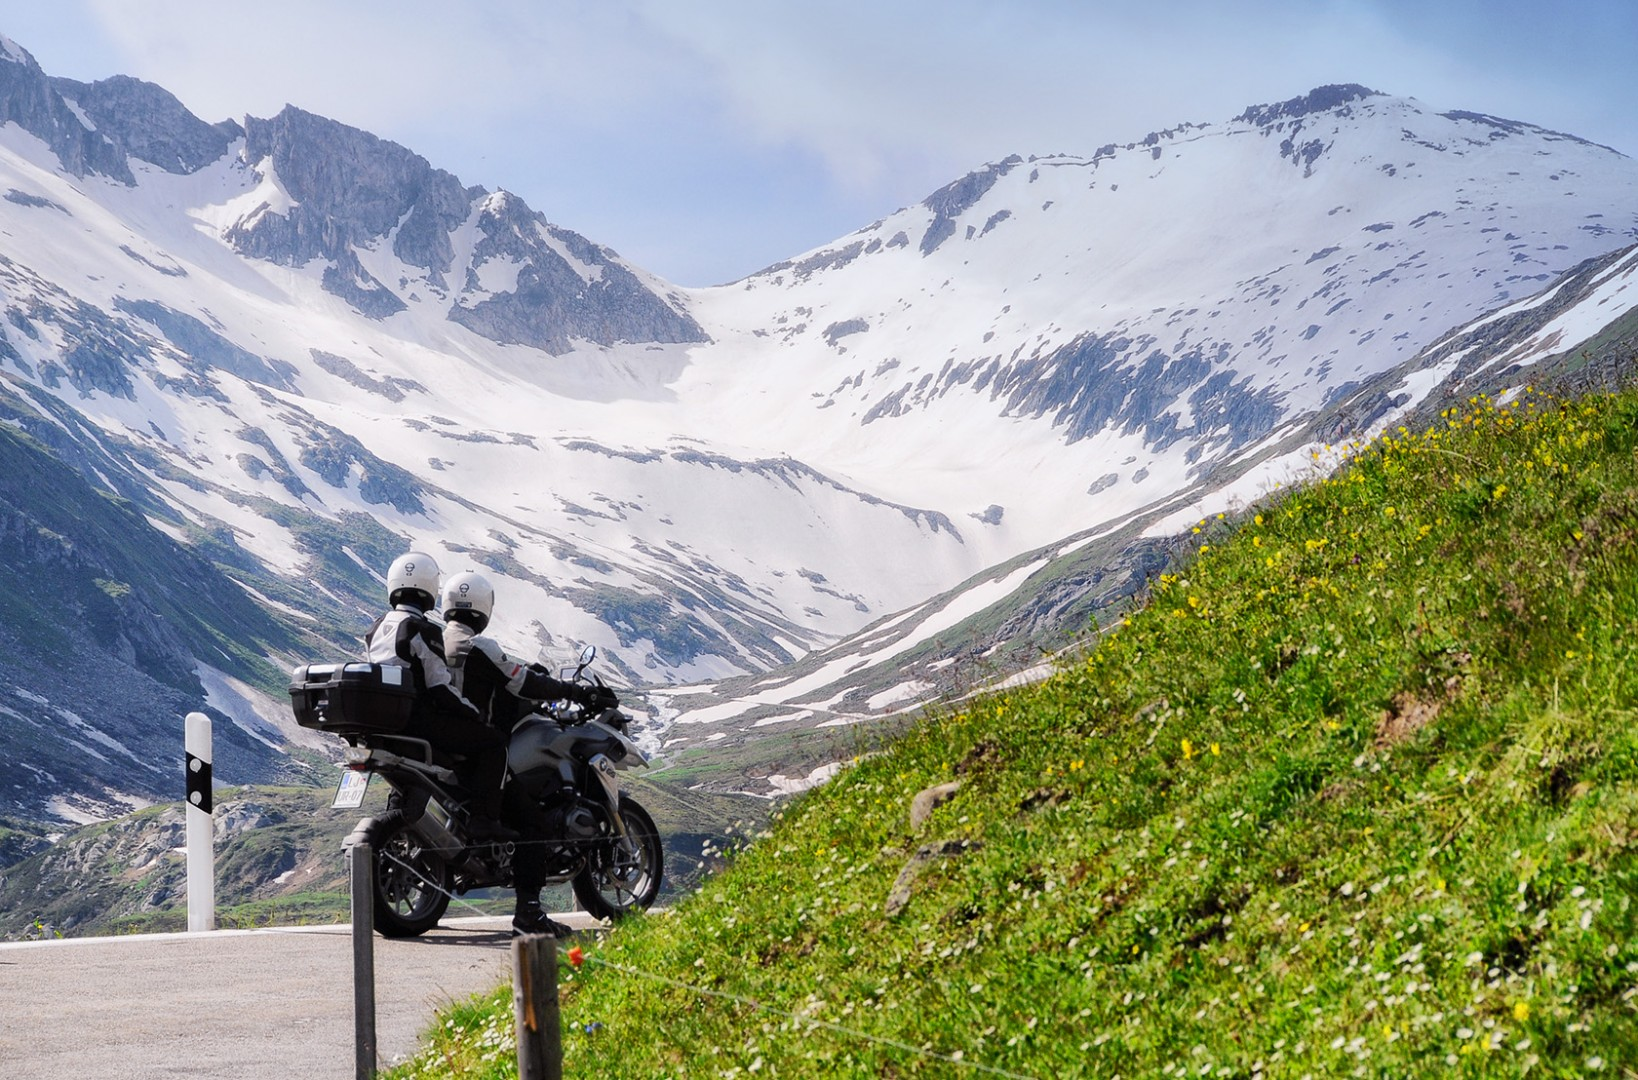 Top of the Alps Motorcycle Tour